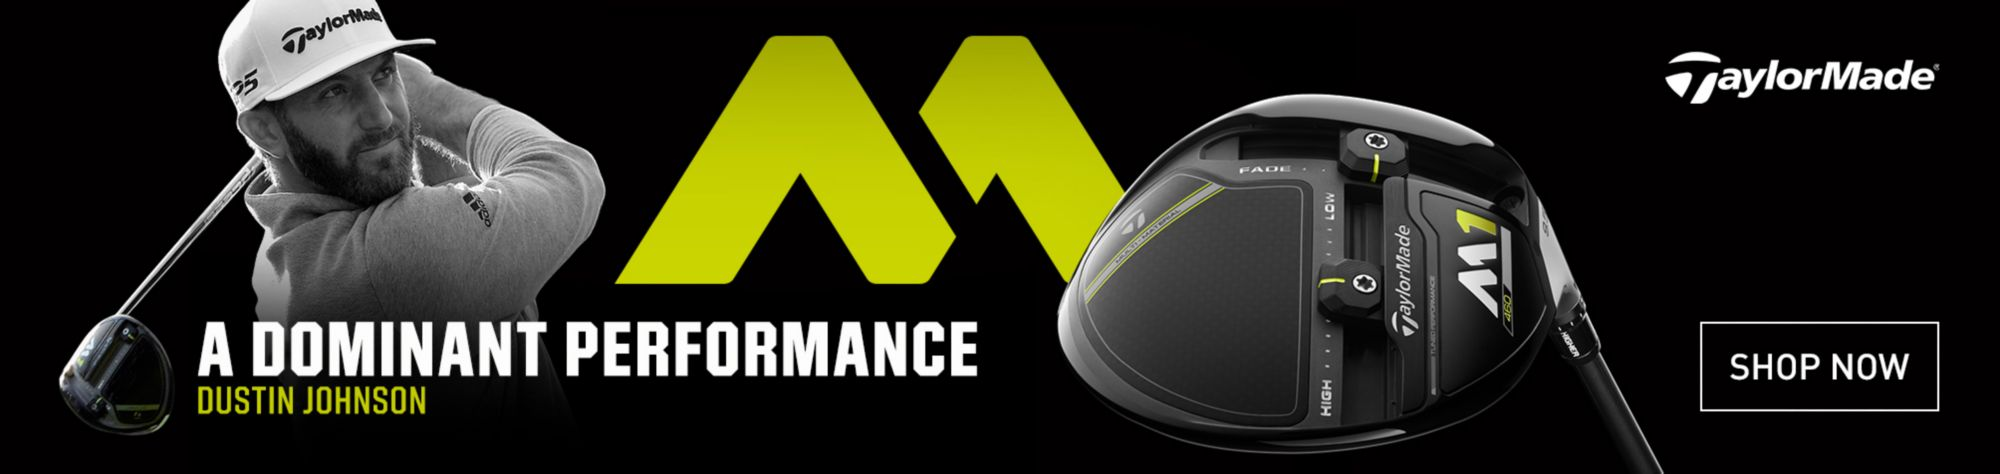 TaylorMade New M1 & M2 Drivers, Fairways, Rescues & Irons